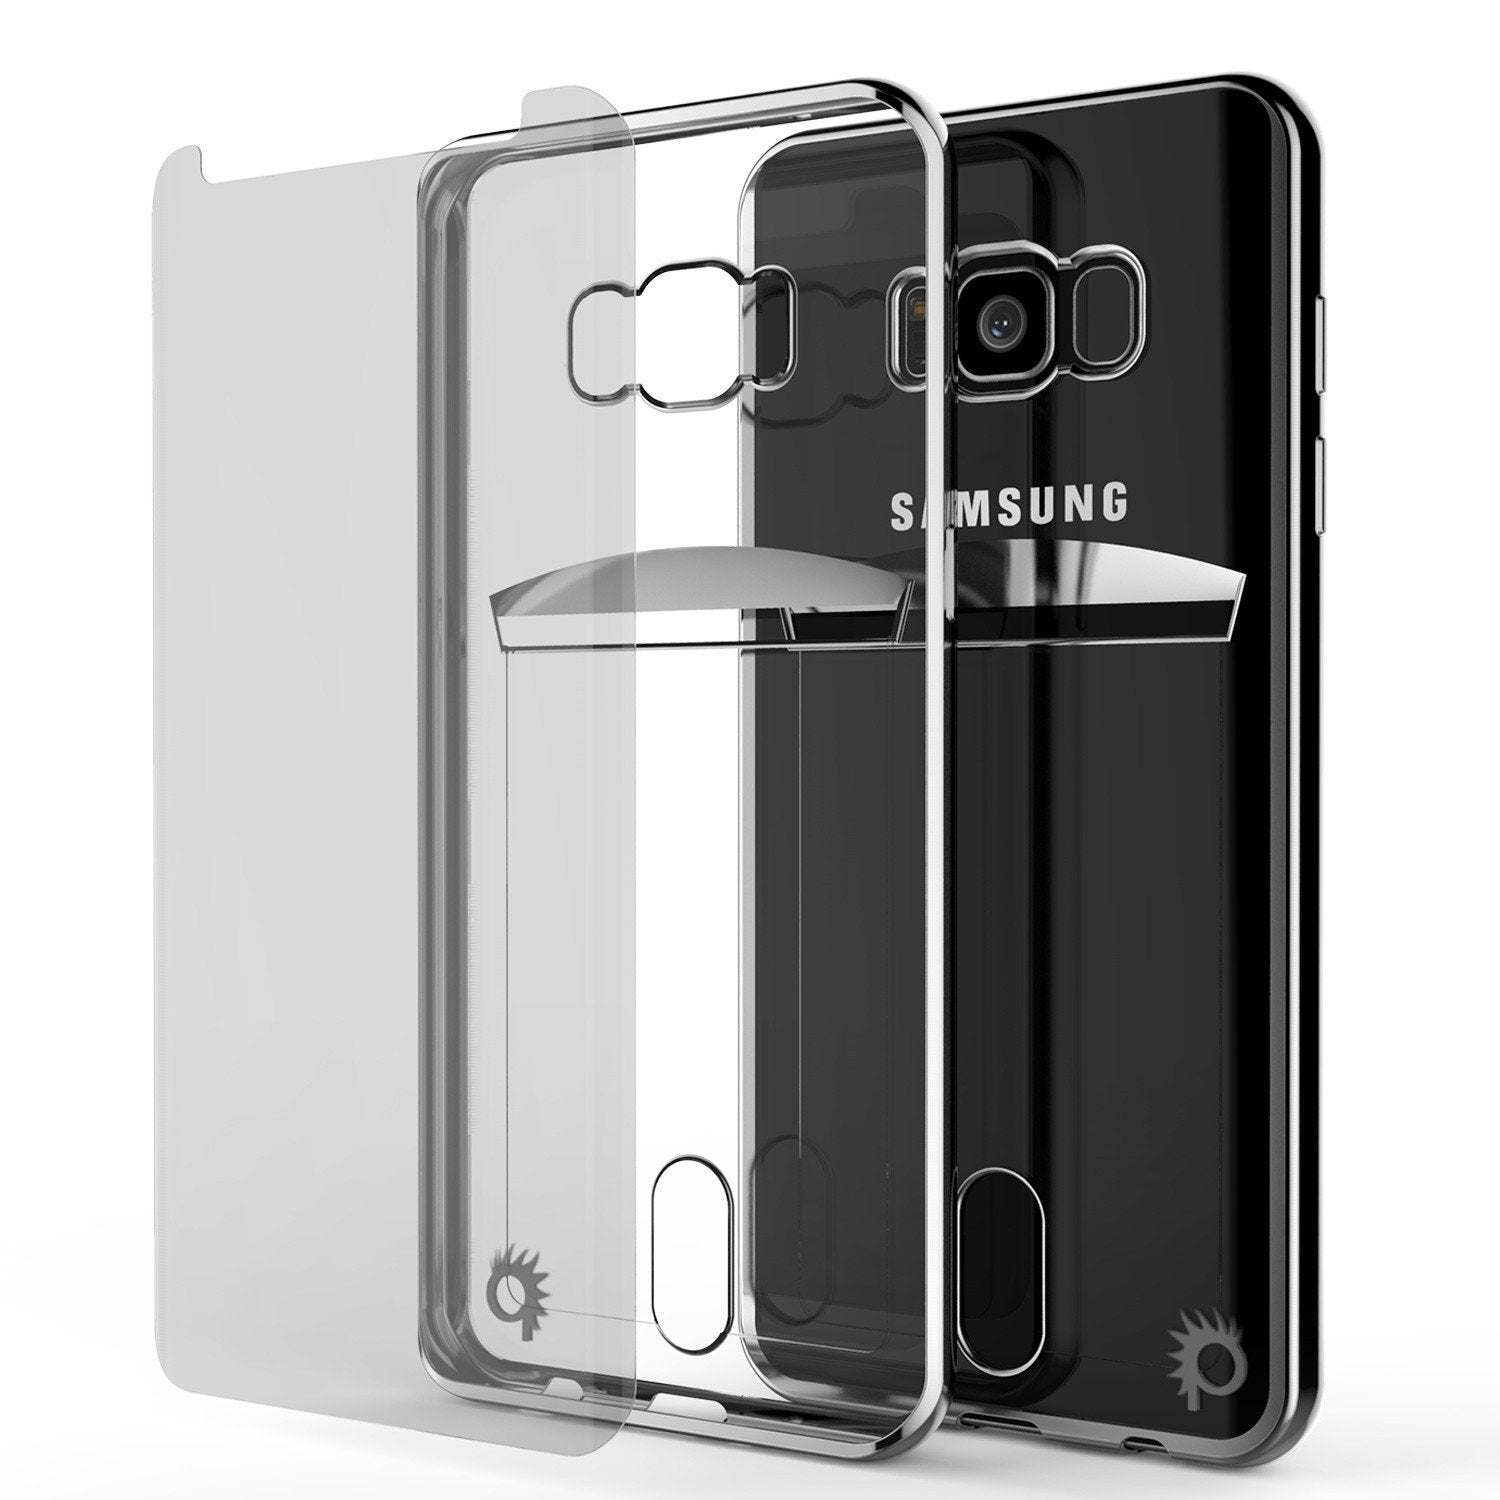 Galaxy S8 Case, PUNKCASE® LUCID Silver Series | Card Slot | SHIELD Screen Protector | Ultra fit - PunkCase NZ